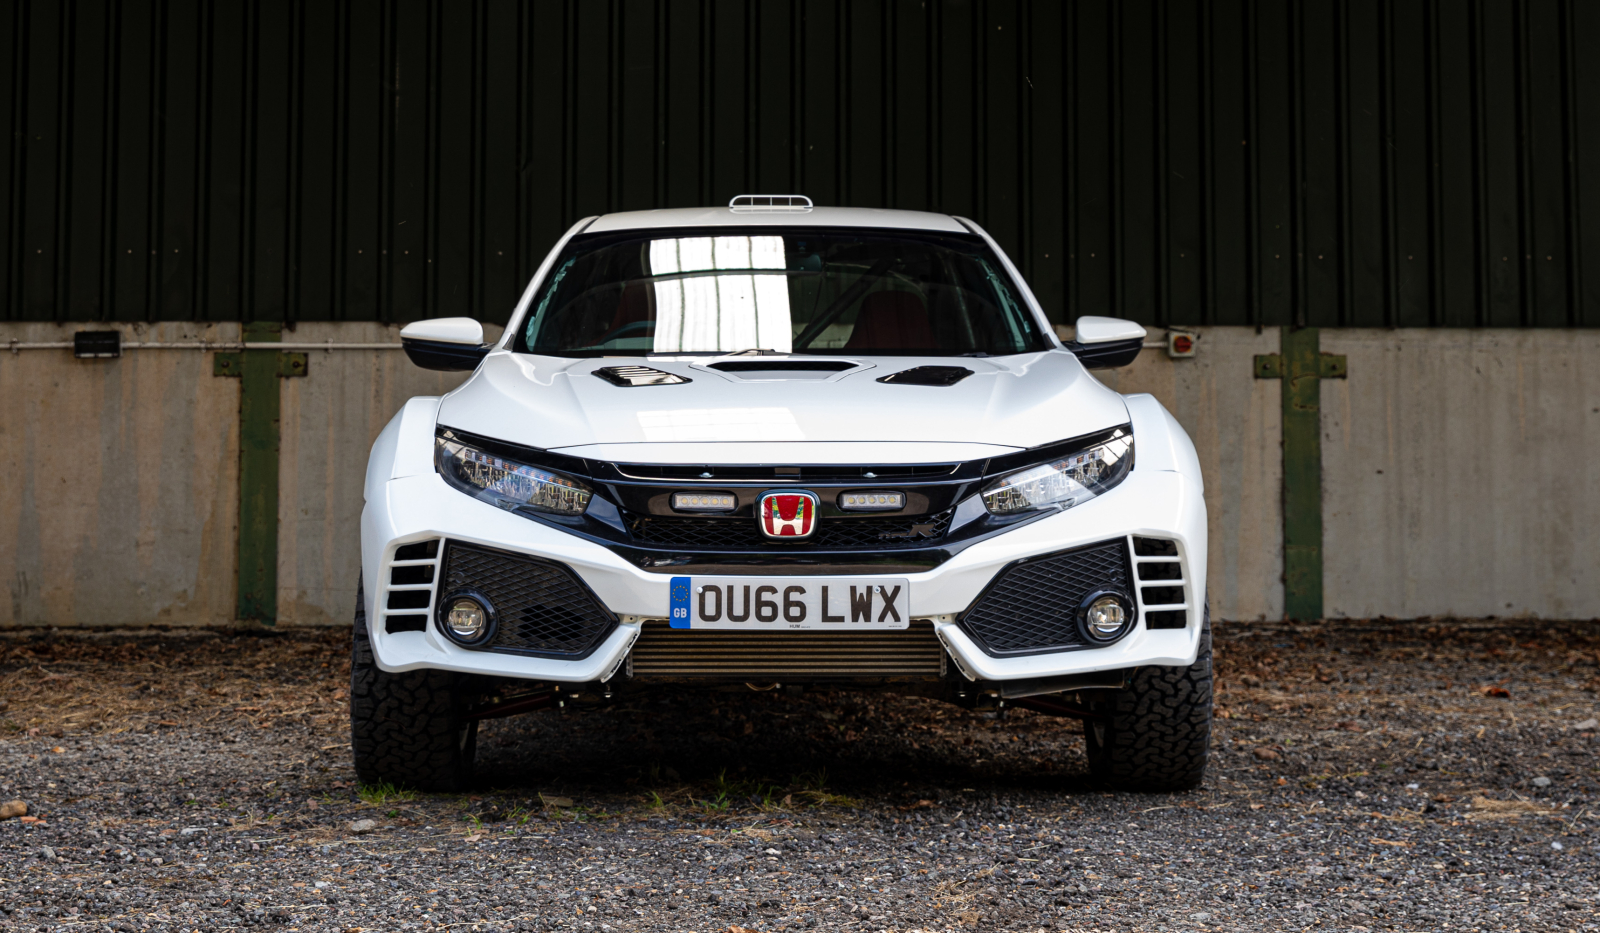 Honda Civic Type oveRland by RHEL